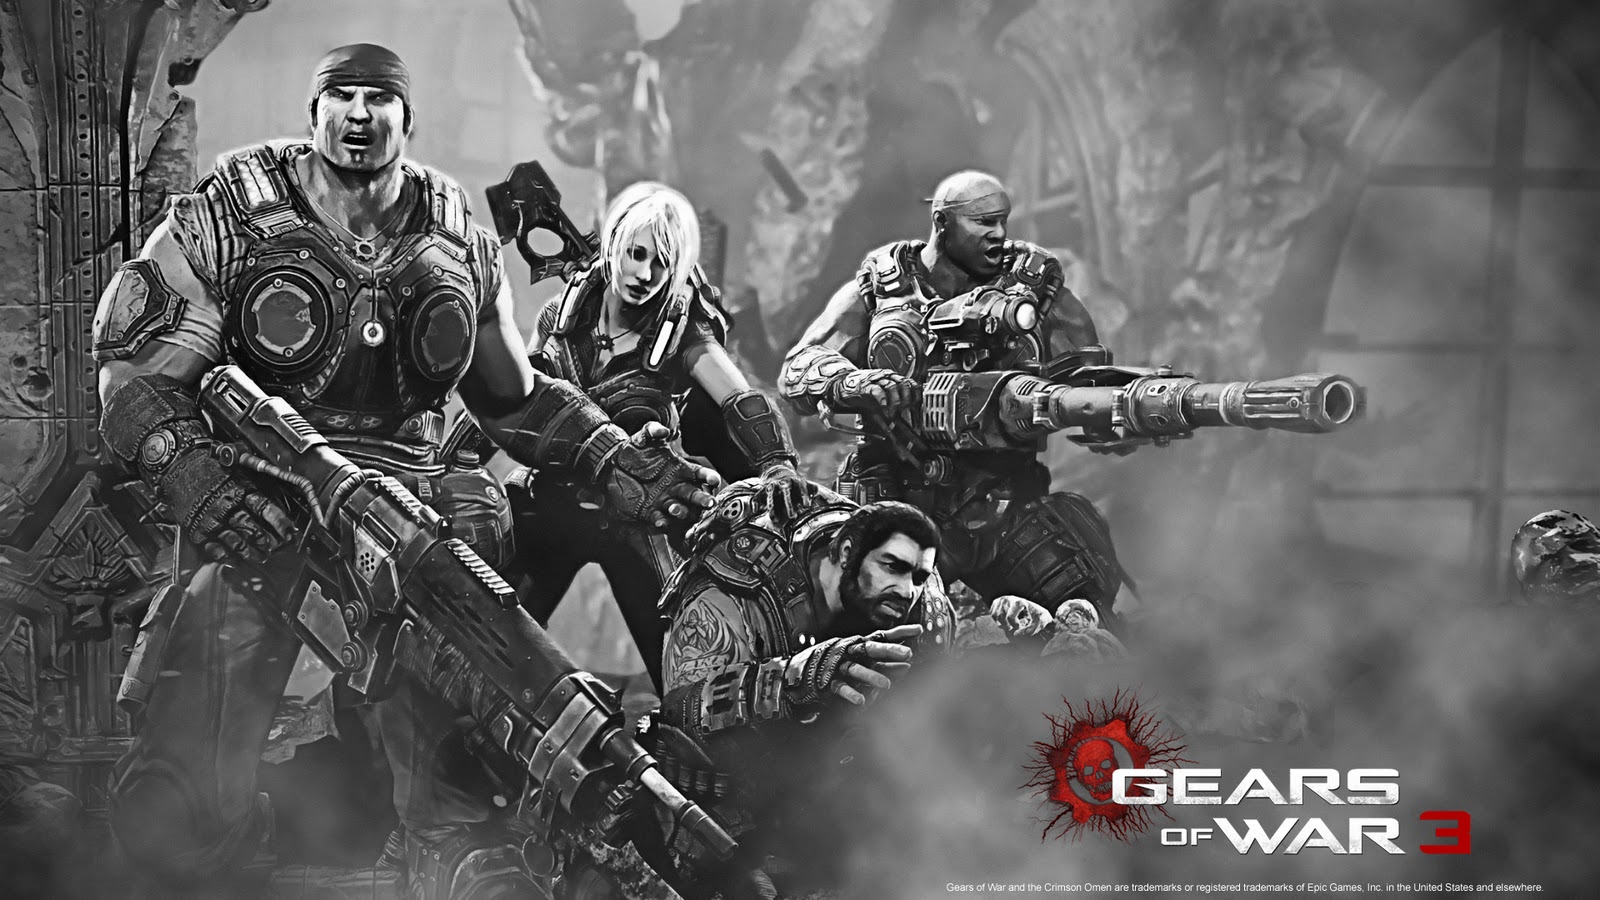 Gears of War HD & Widescreen Wallpaper 0.592516452109757